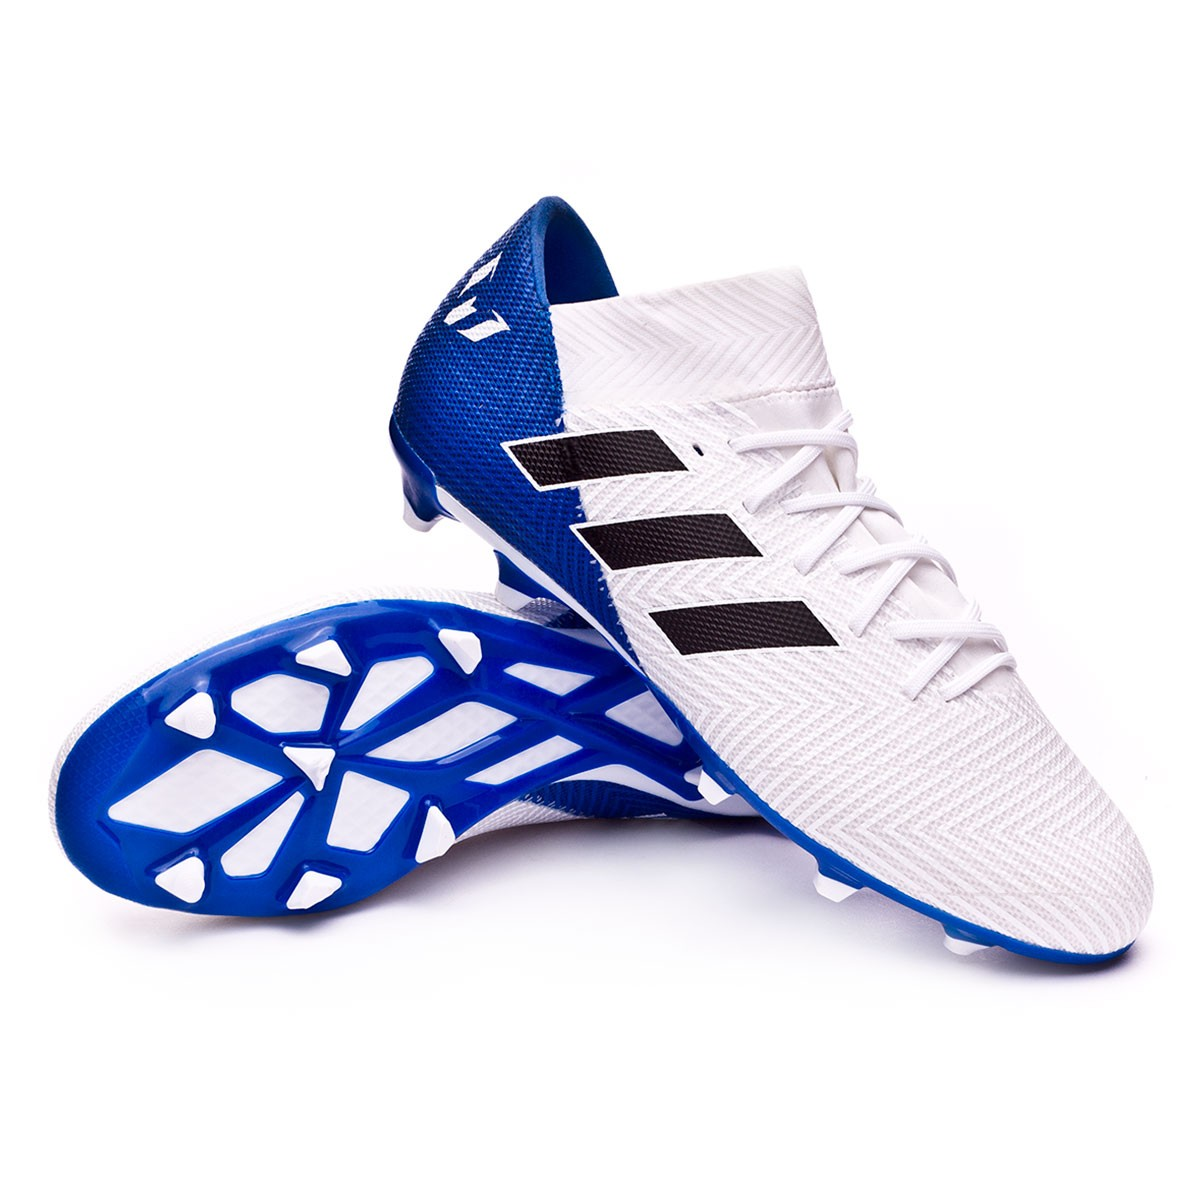 3a7c5bfd4 Football Boots adidas Nemeziz Messi 18.3 FG White-Core black-Football blue  - Football store Fútbol Emotion